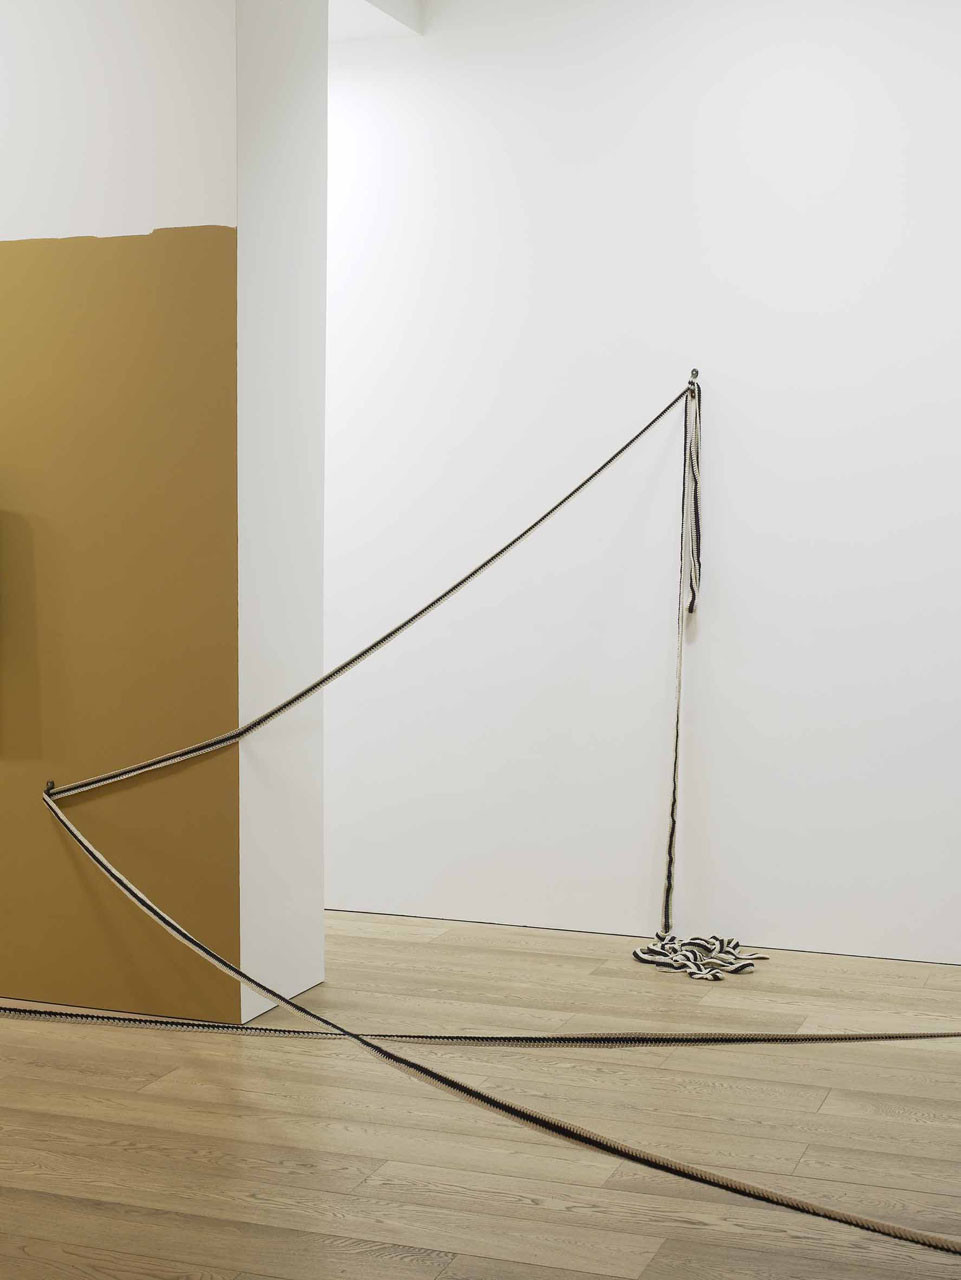 """<div class=""""artwork_caption""""><p>The Bodily Experience of a physical Impracticality, 2010</p></div>"""